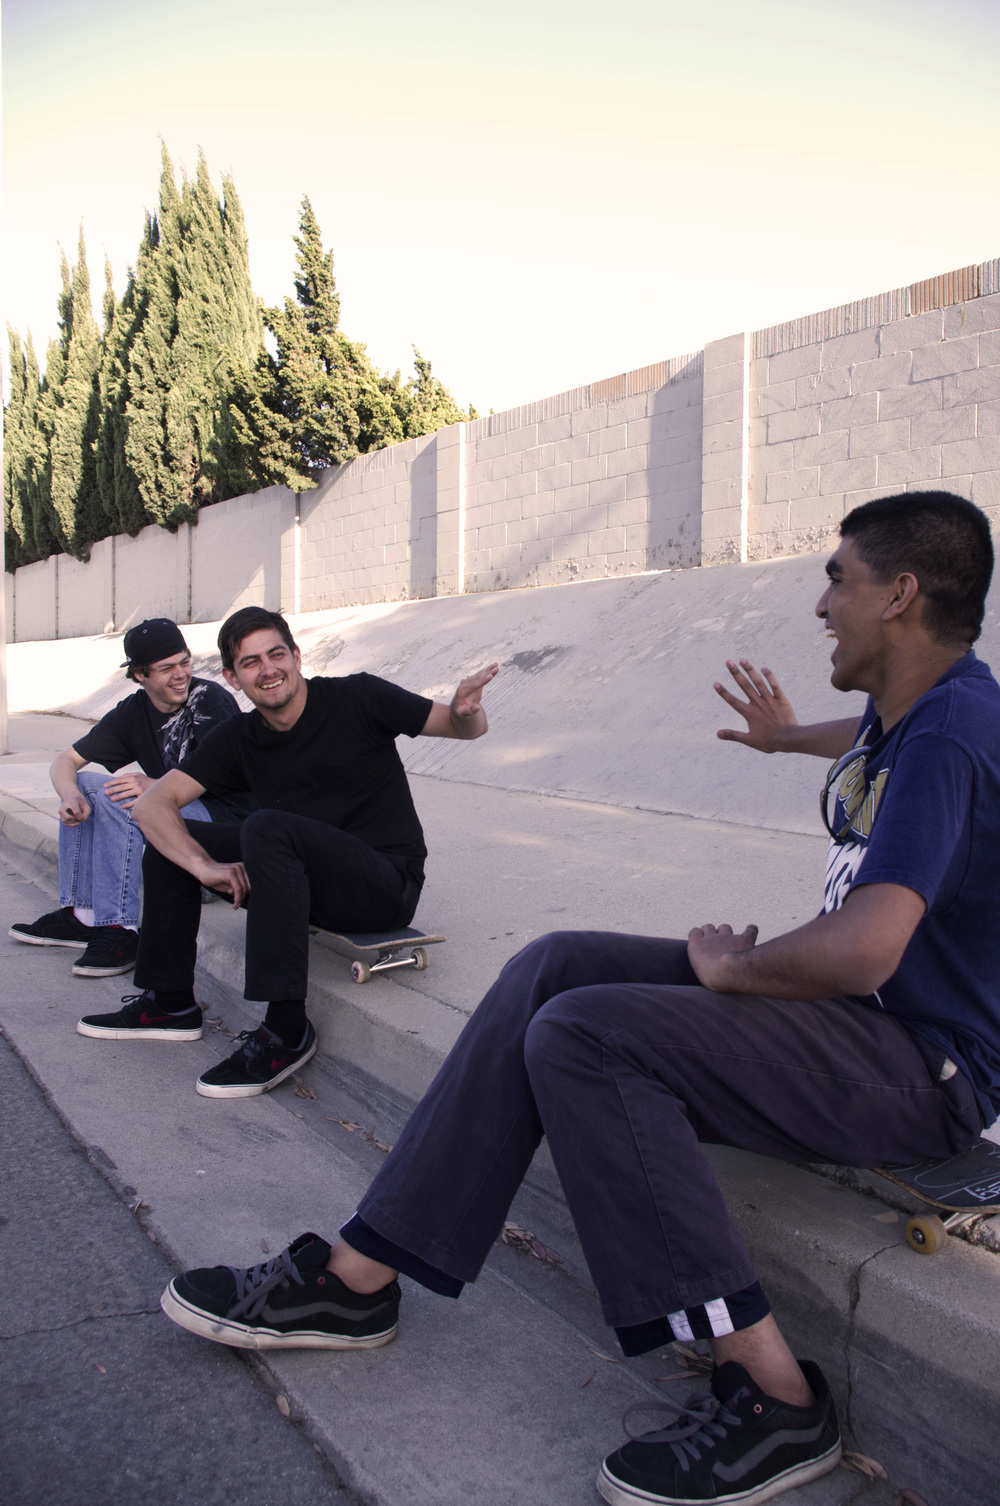 Team members Brandon, Adam, and Mohammed chilling at a skate spot.